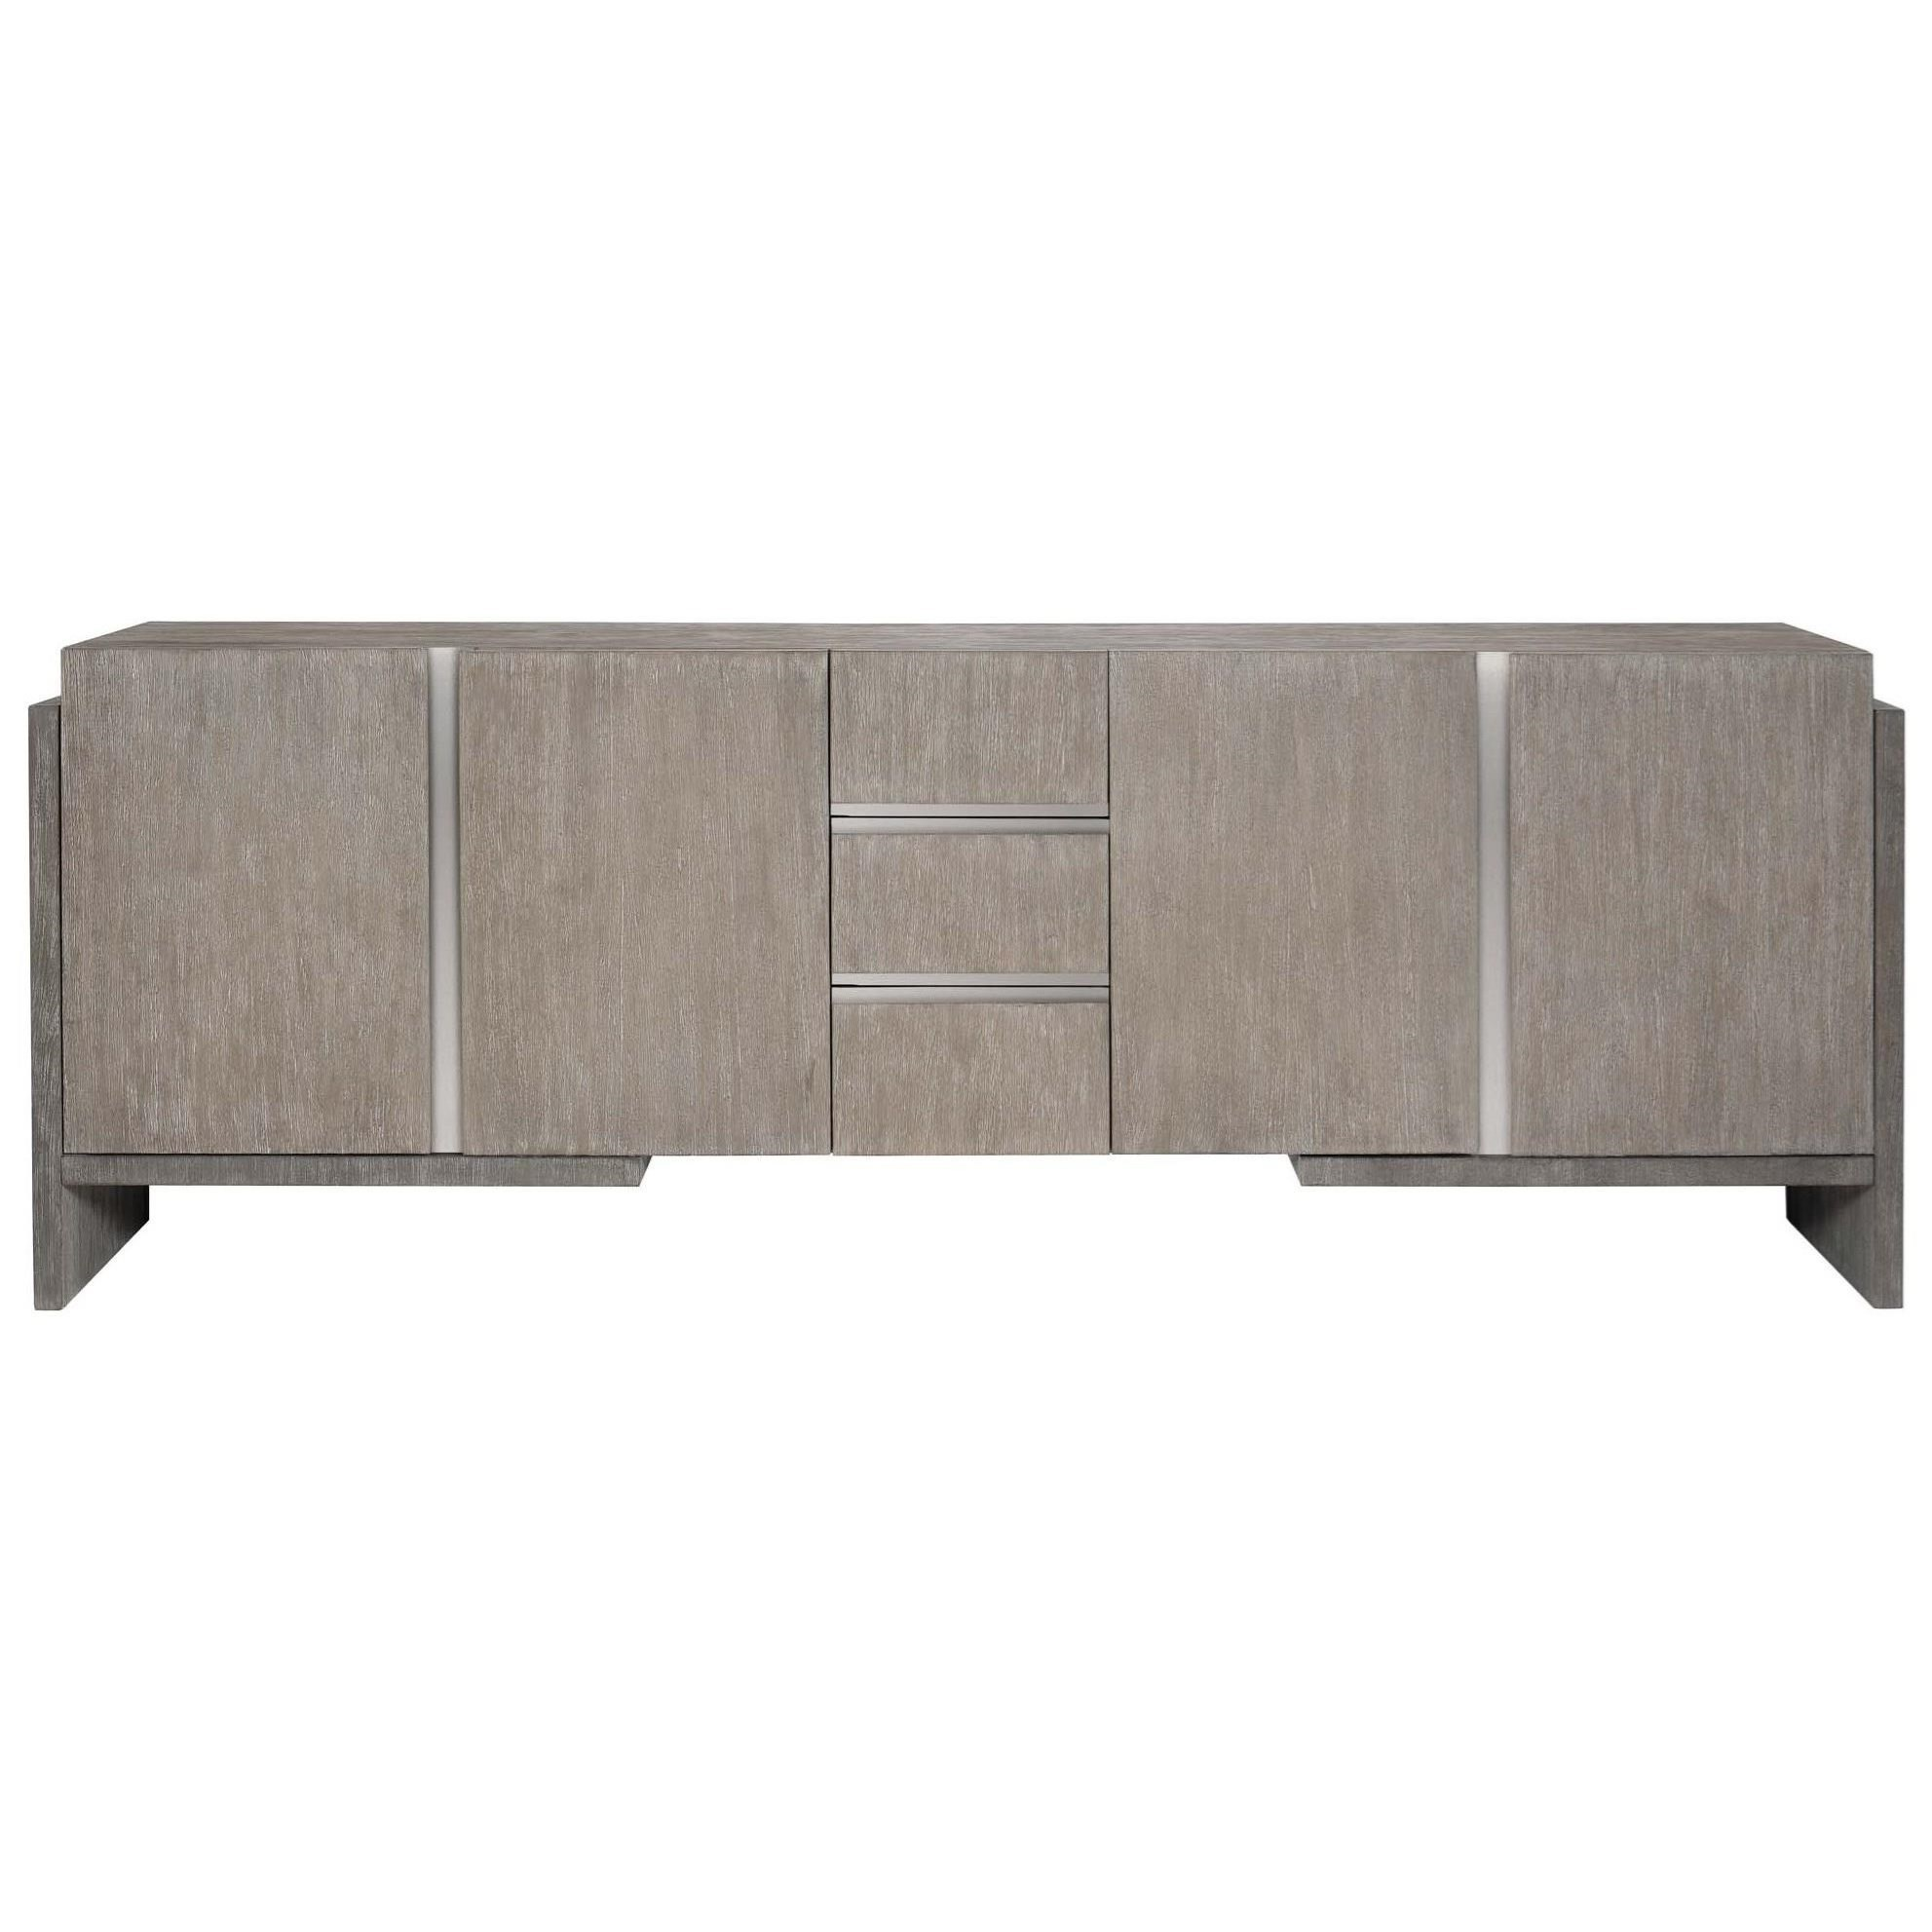 Foundations Entertainment Credenza at Williams & Kay